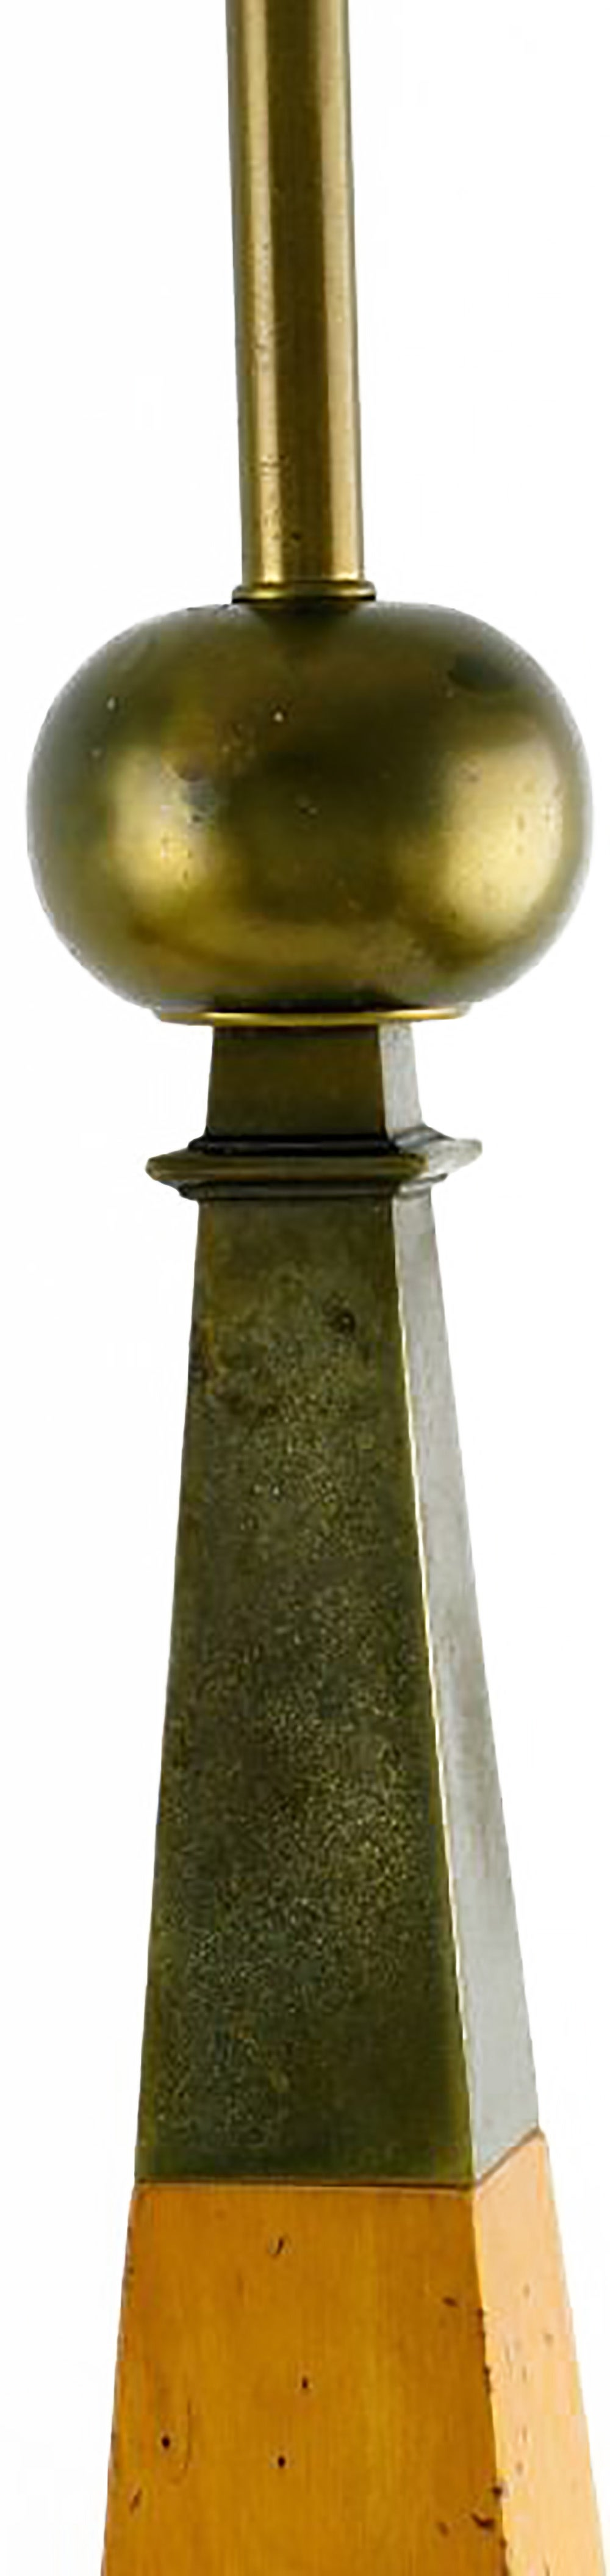 American Elegant Pair of Stiffel Walnut and Brass Obelisk Table Lamps For Sale